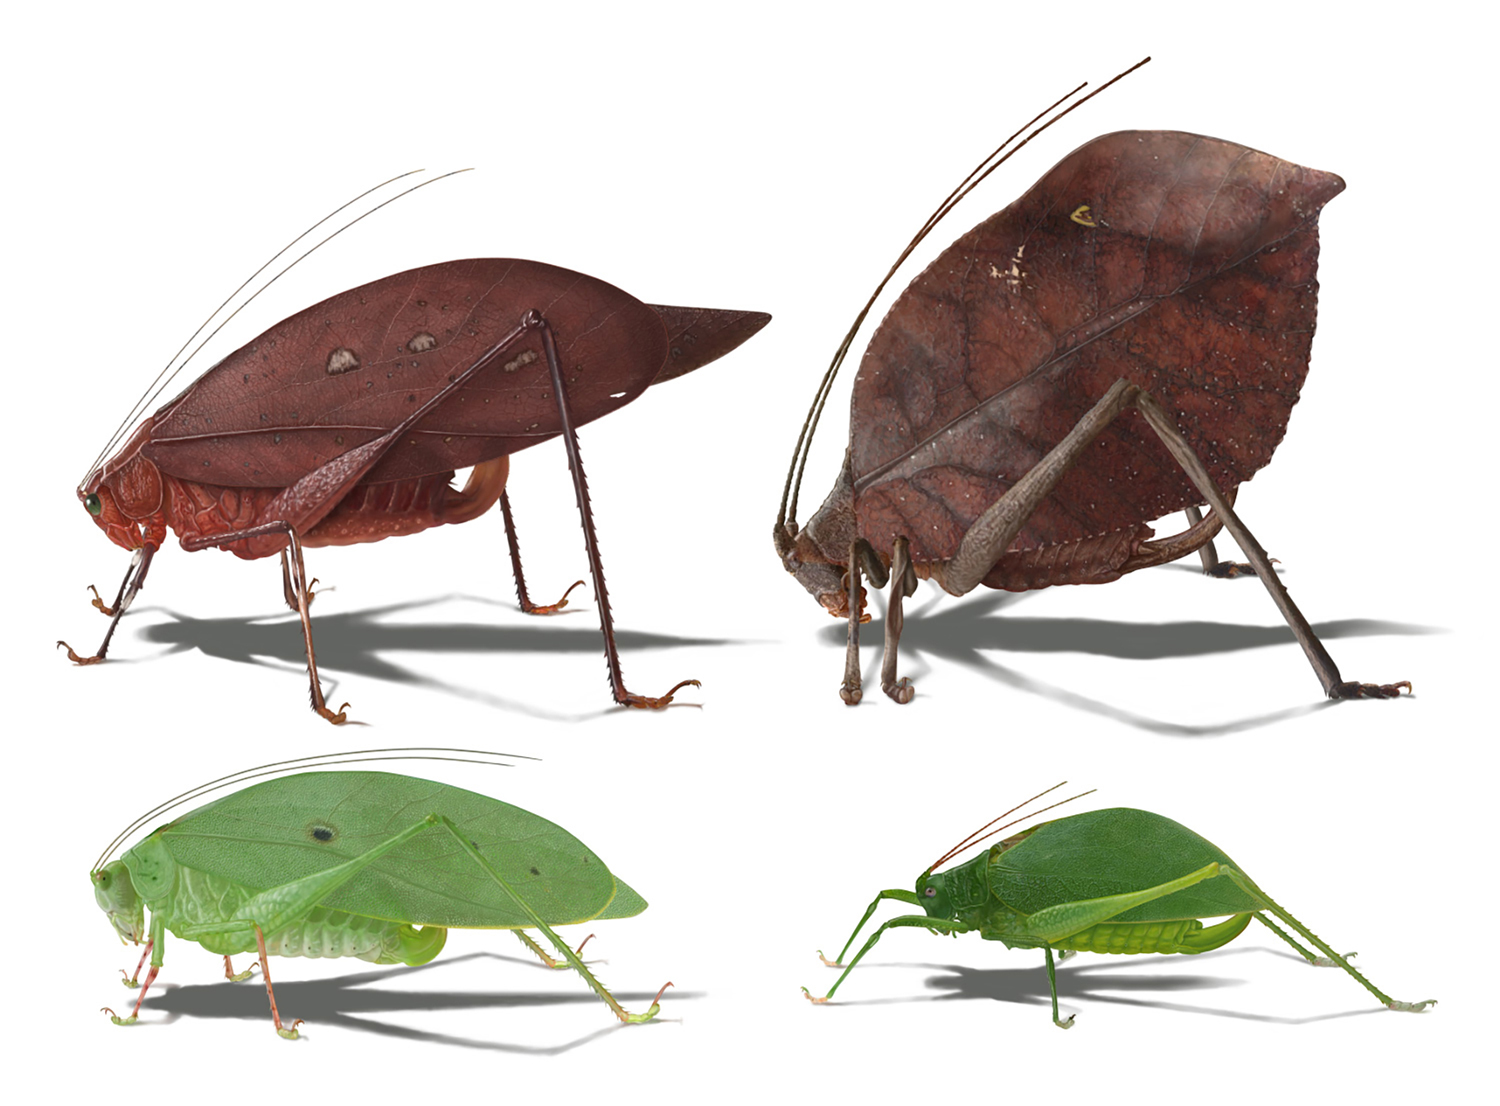 Convergent Evolution in Neotropical Katydids  Top:  Orophus consepersus  &  Mimetica spp.  Bottom:  Phylloptera dimidata  &  Parascopioricus fragilis . Created for Dr. Laurel Symes at Cornell